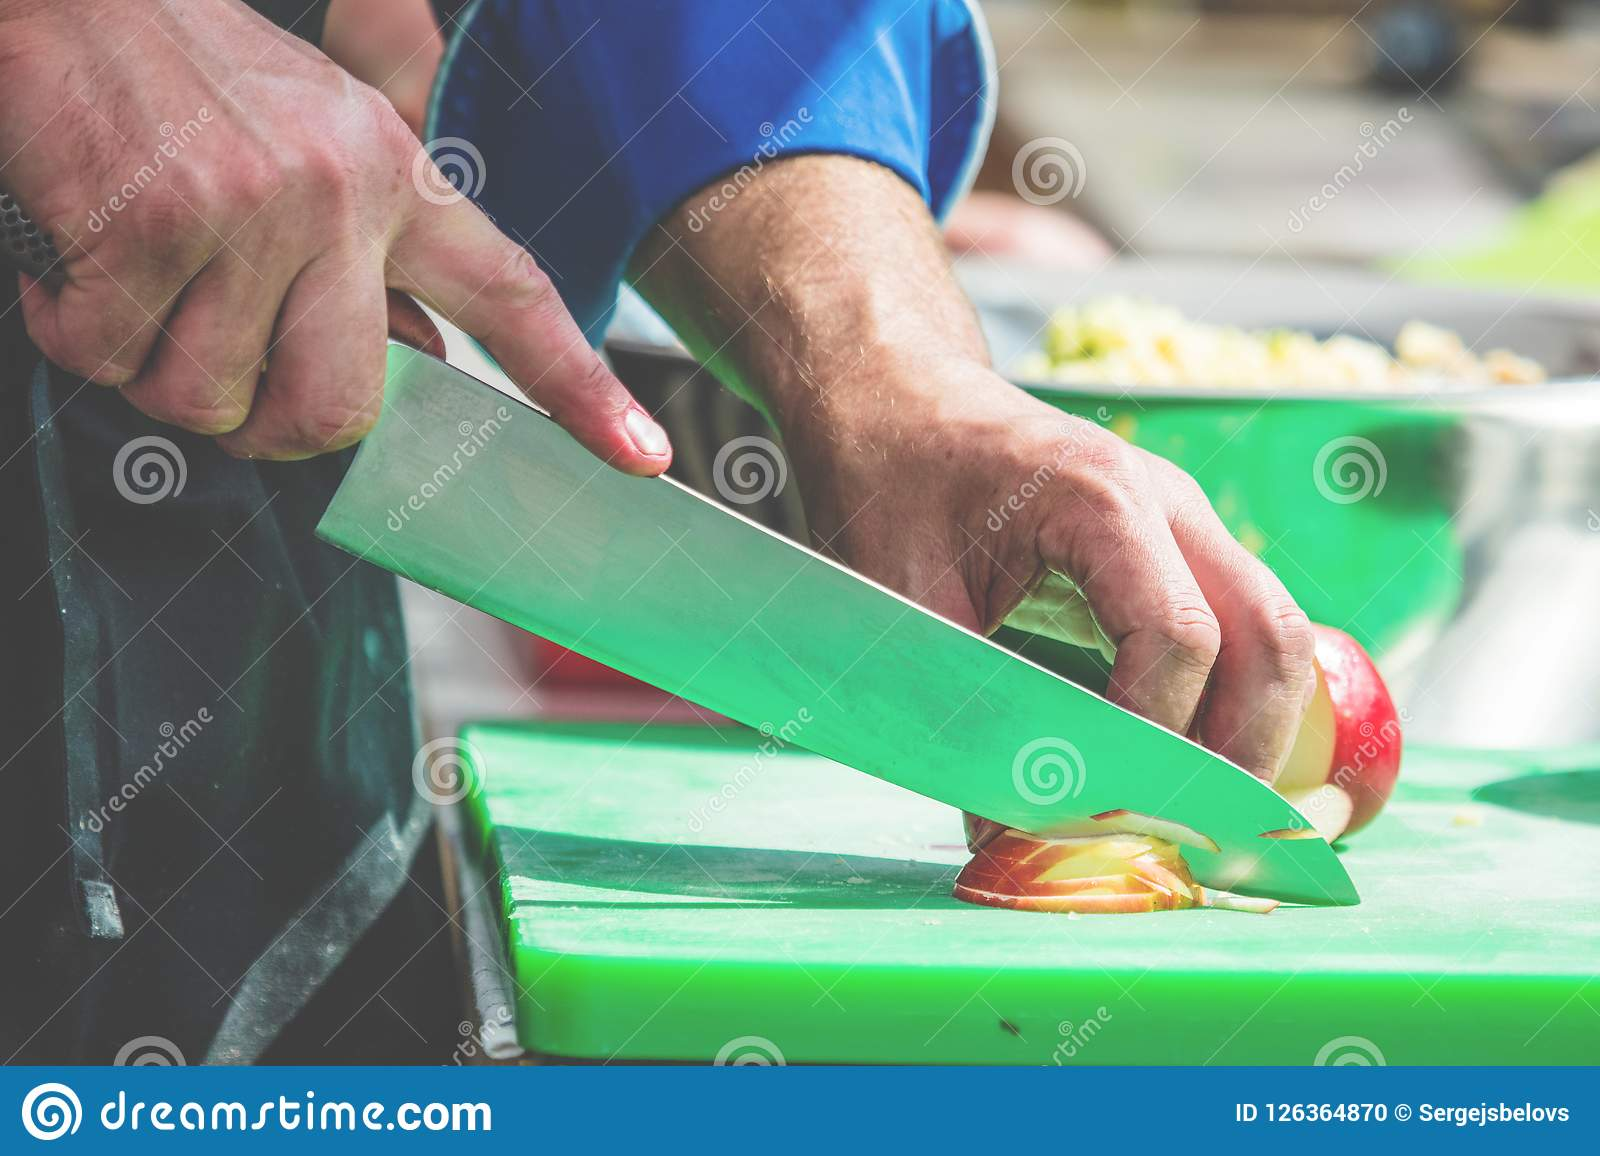 Close up of unrecognizable cook cutting onions and other vegetables with chef knife while working